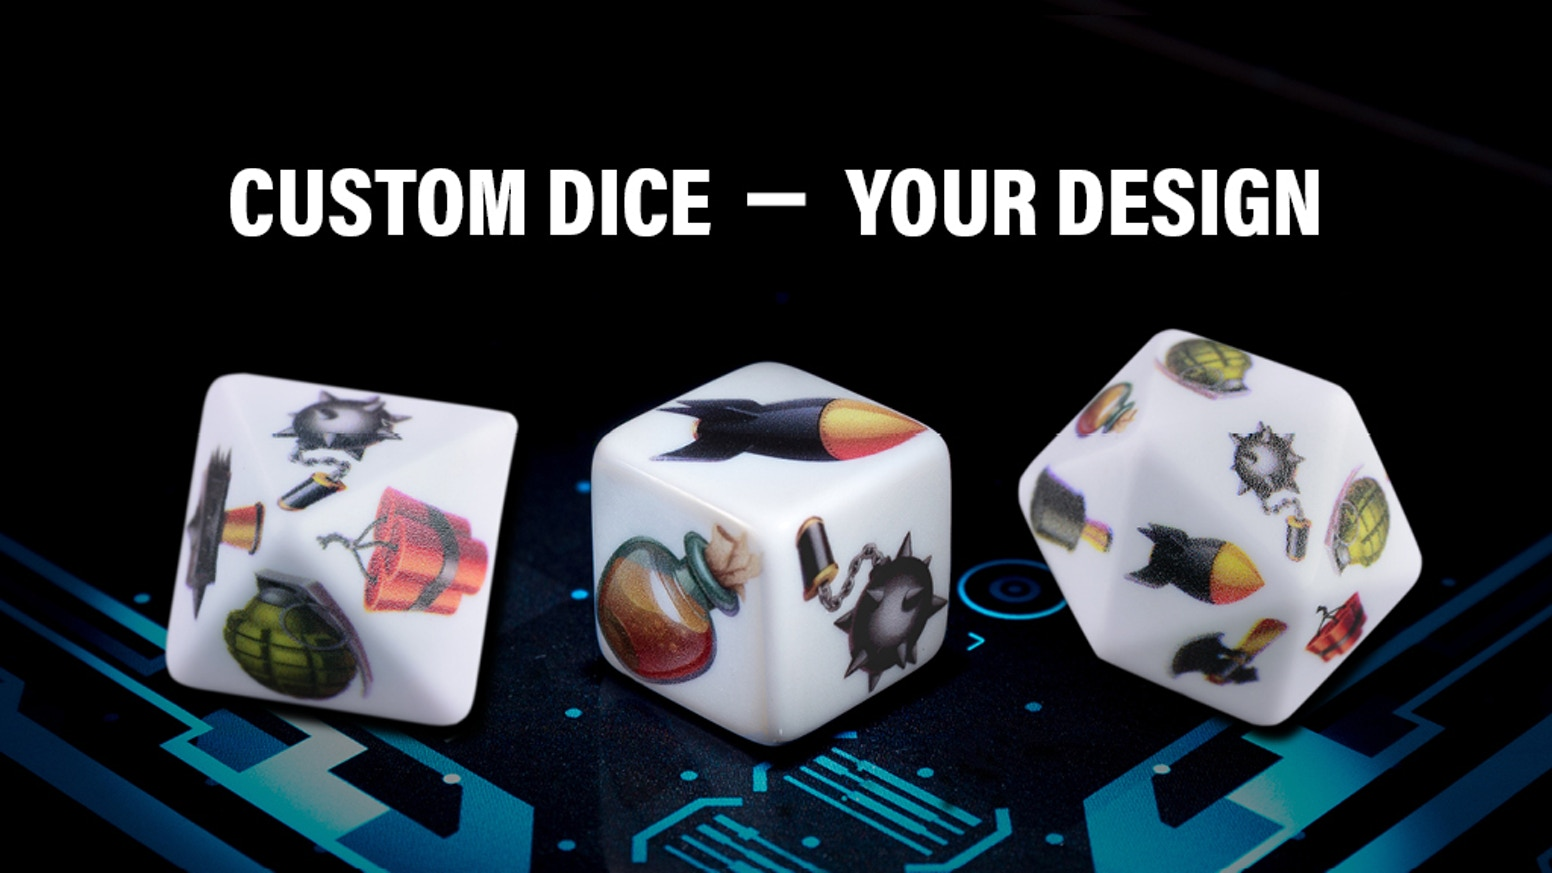 Full color, robust textured printed dice. Our new revolutionary print technology for small print runs.